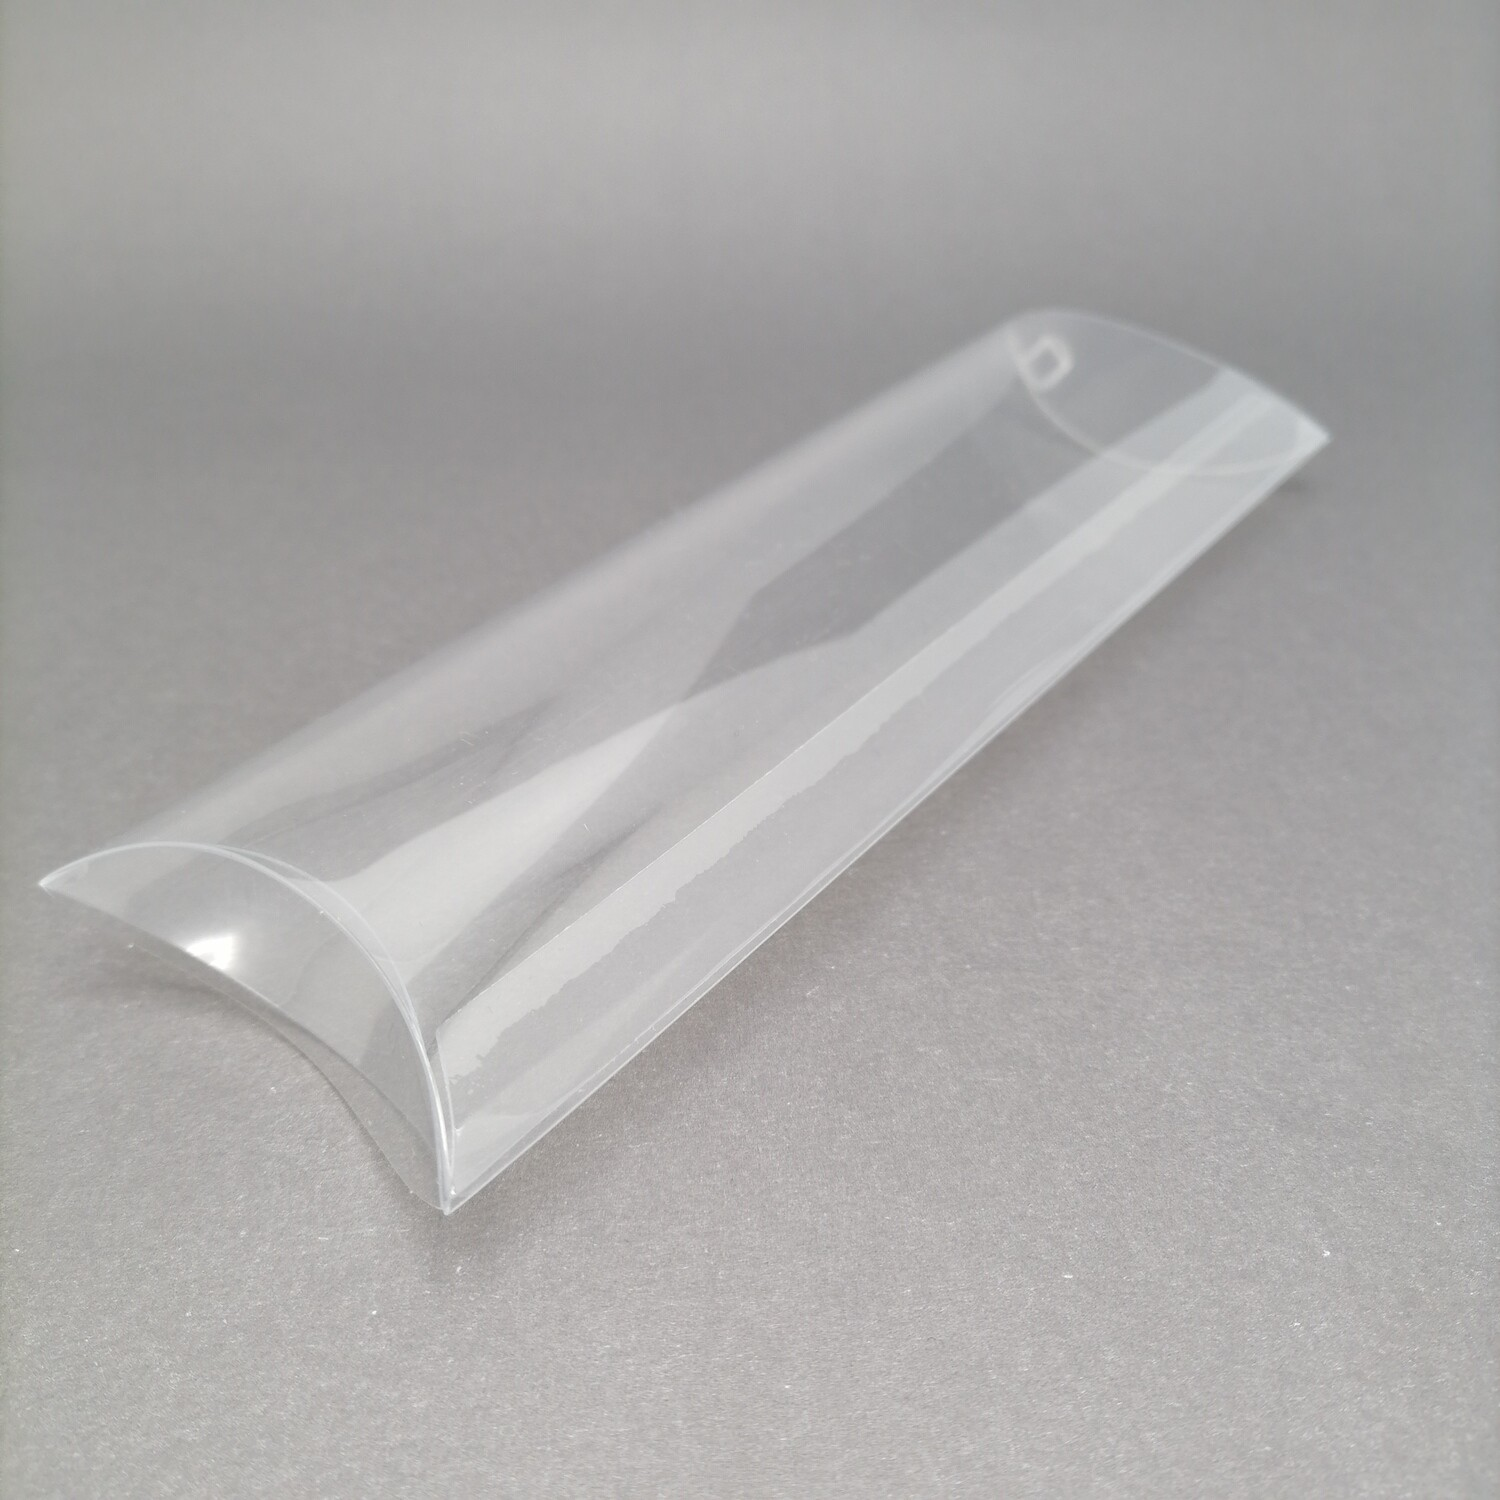 PACKAGING TRANSP YY-10 Y604 6*19.5CM*5PCS/PVC